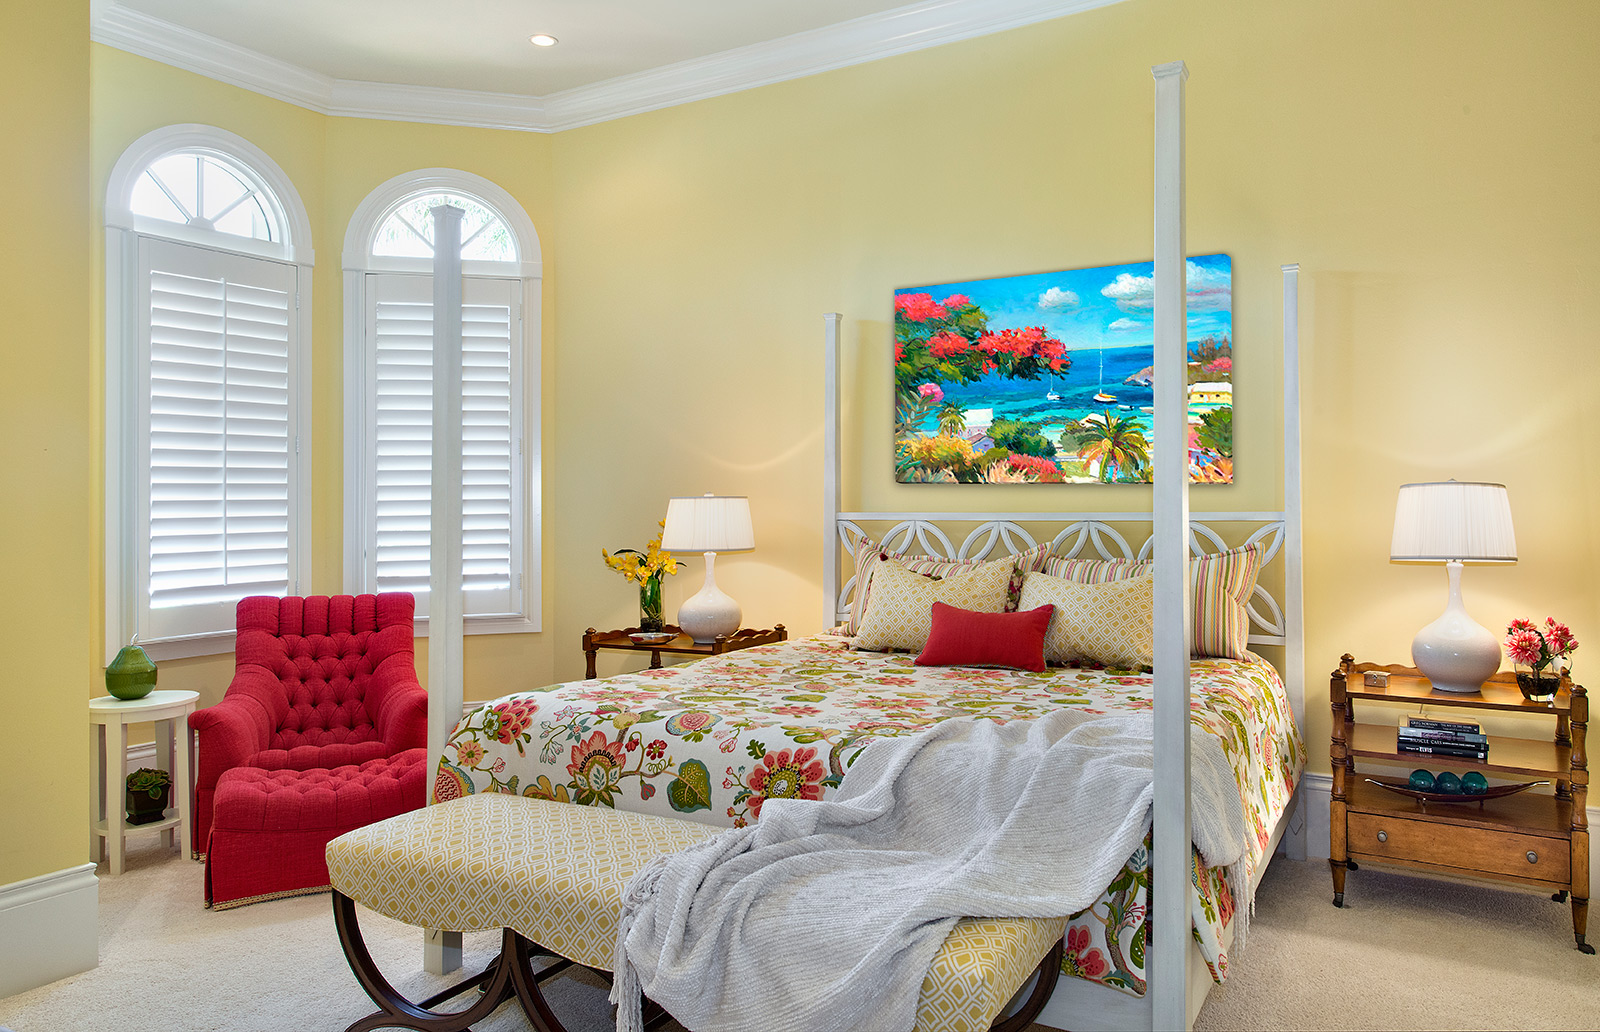 Bedroom with Painting